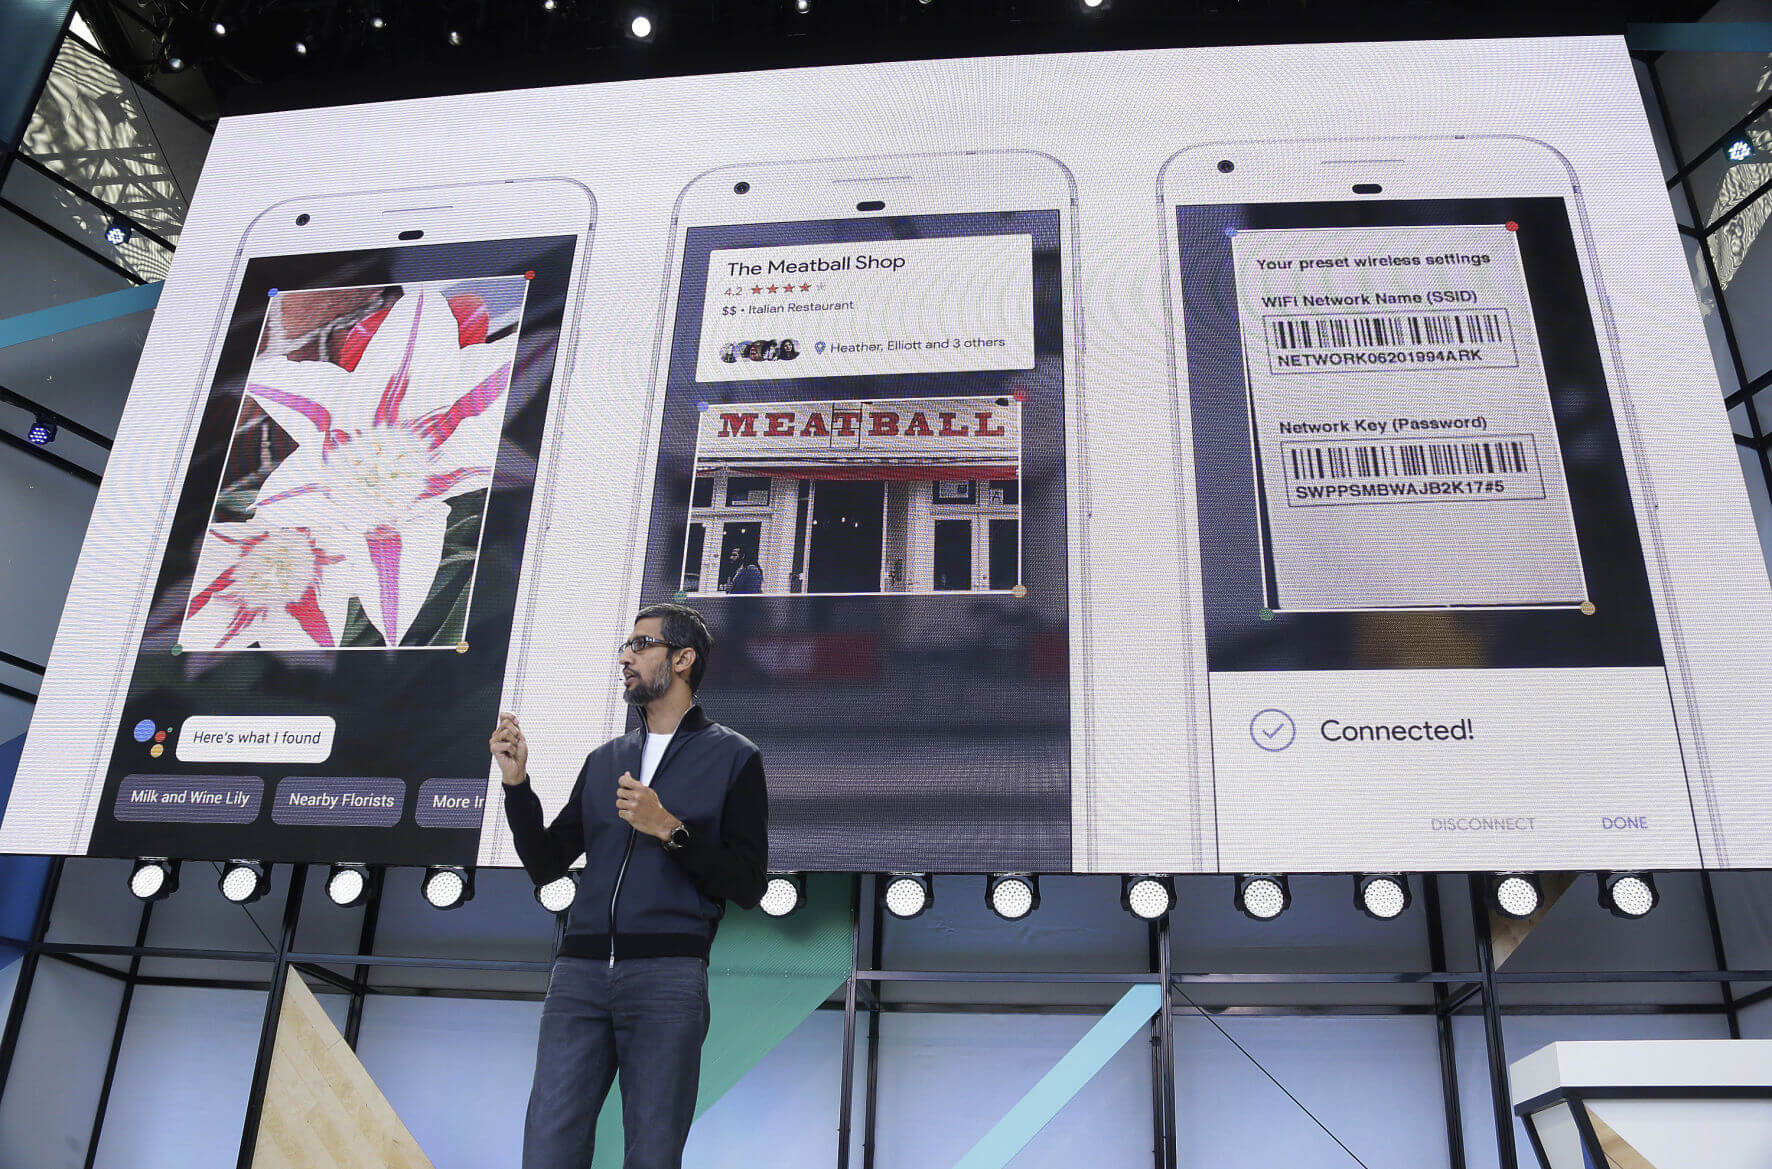 Google Lens can detect over 1 billion objects